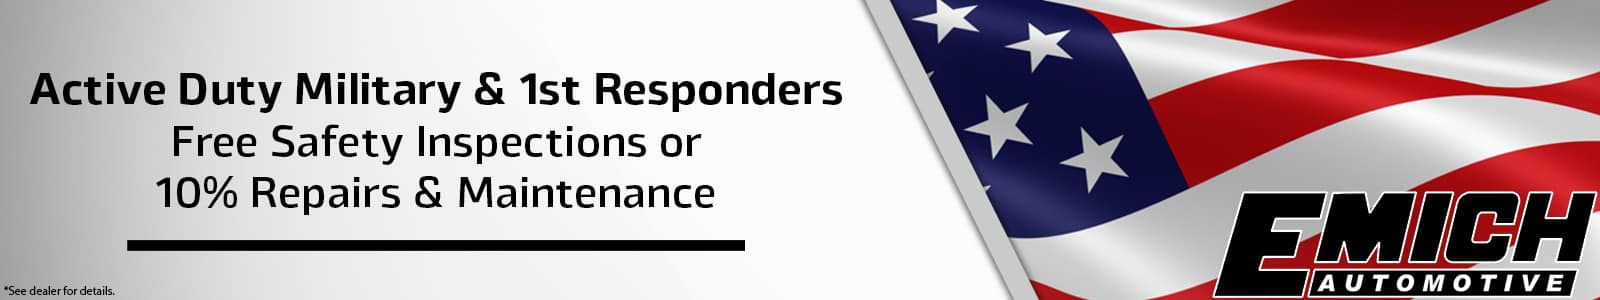 Military and 1st Responder Service Specials